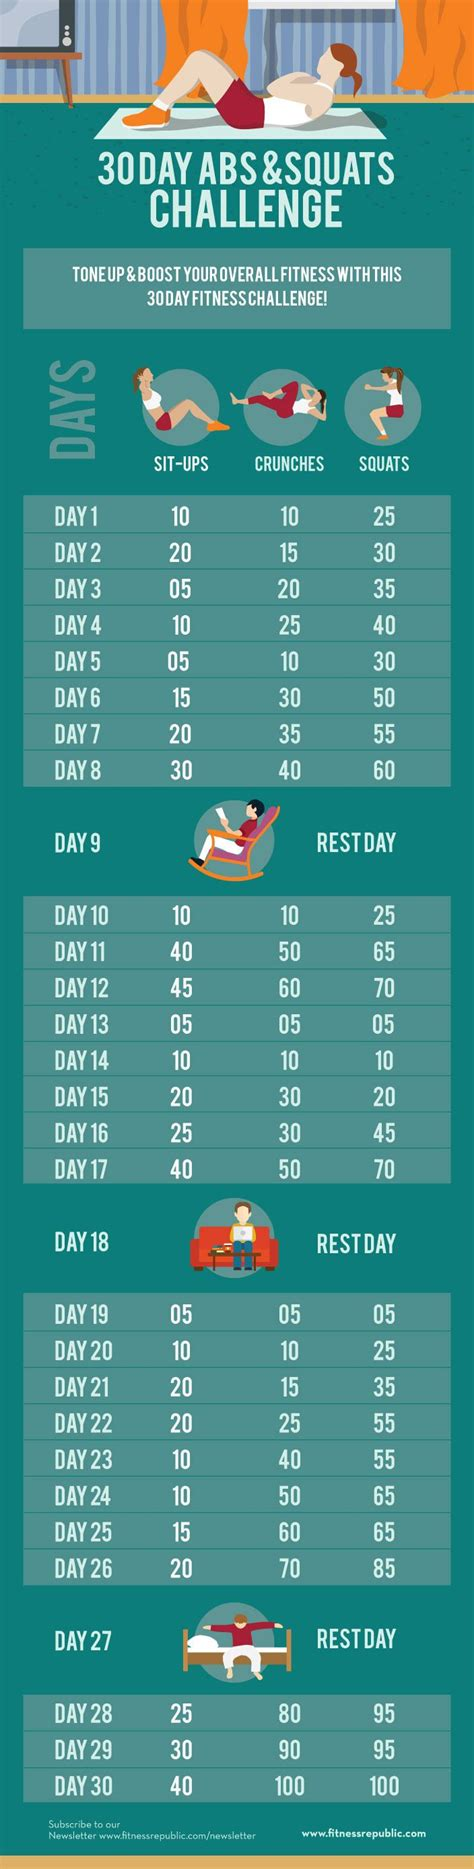 squats and abs challenge best 25 ab and squat challenge ideas on 30